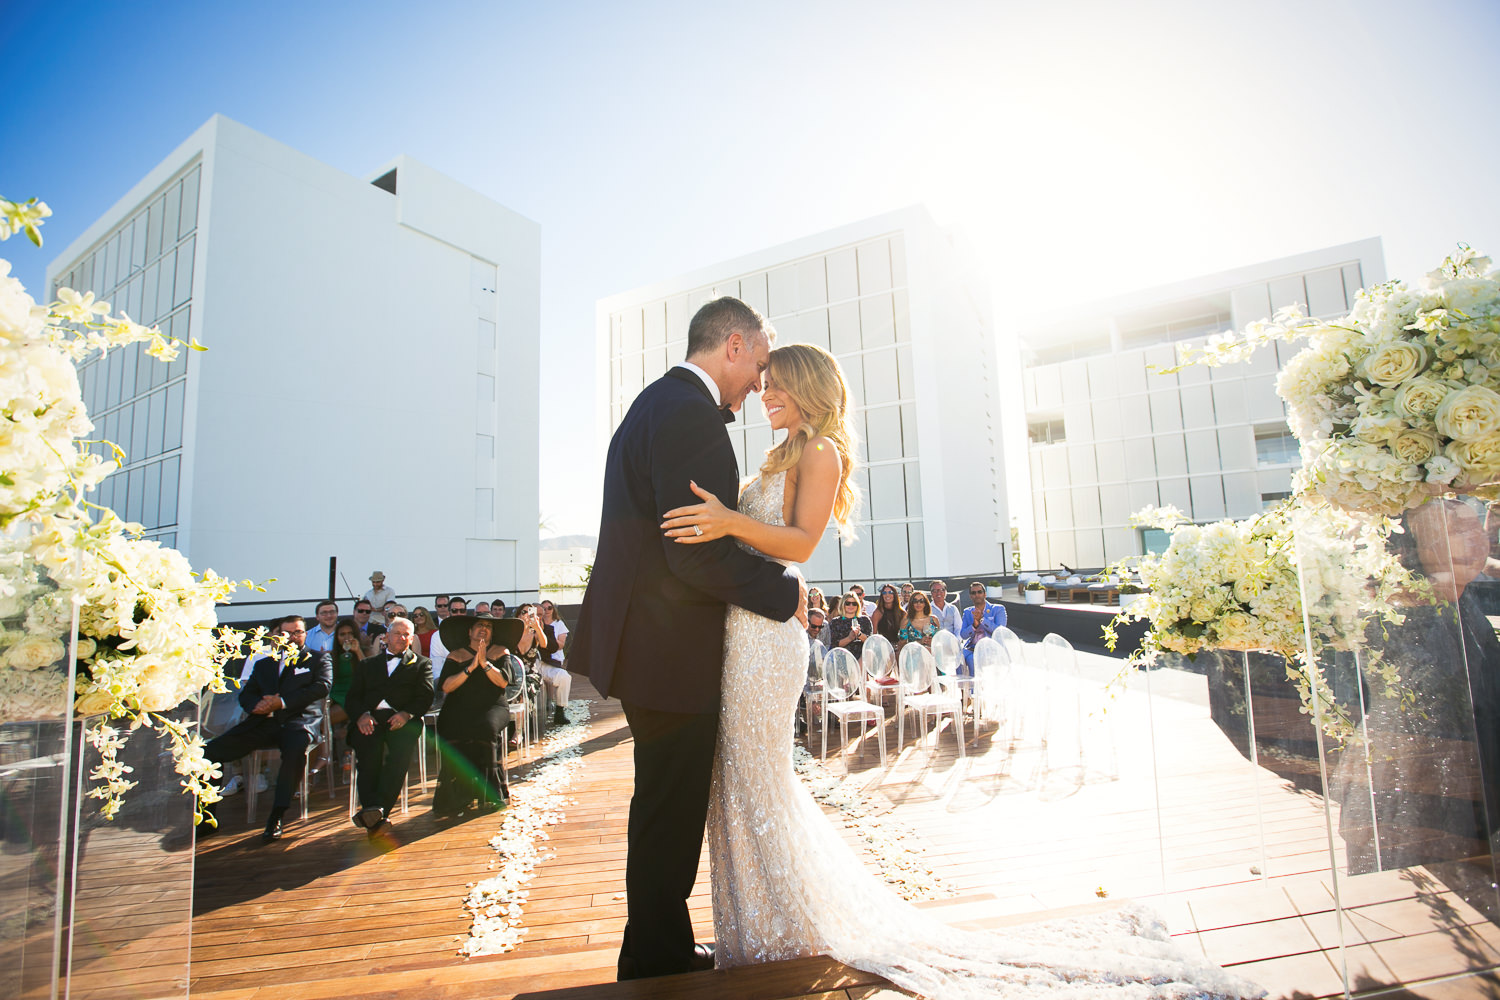 Viceroy Los Cabos Wedding - Right before the kiss